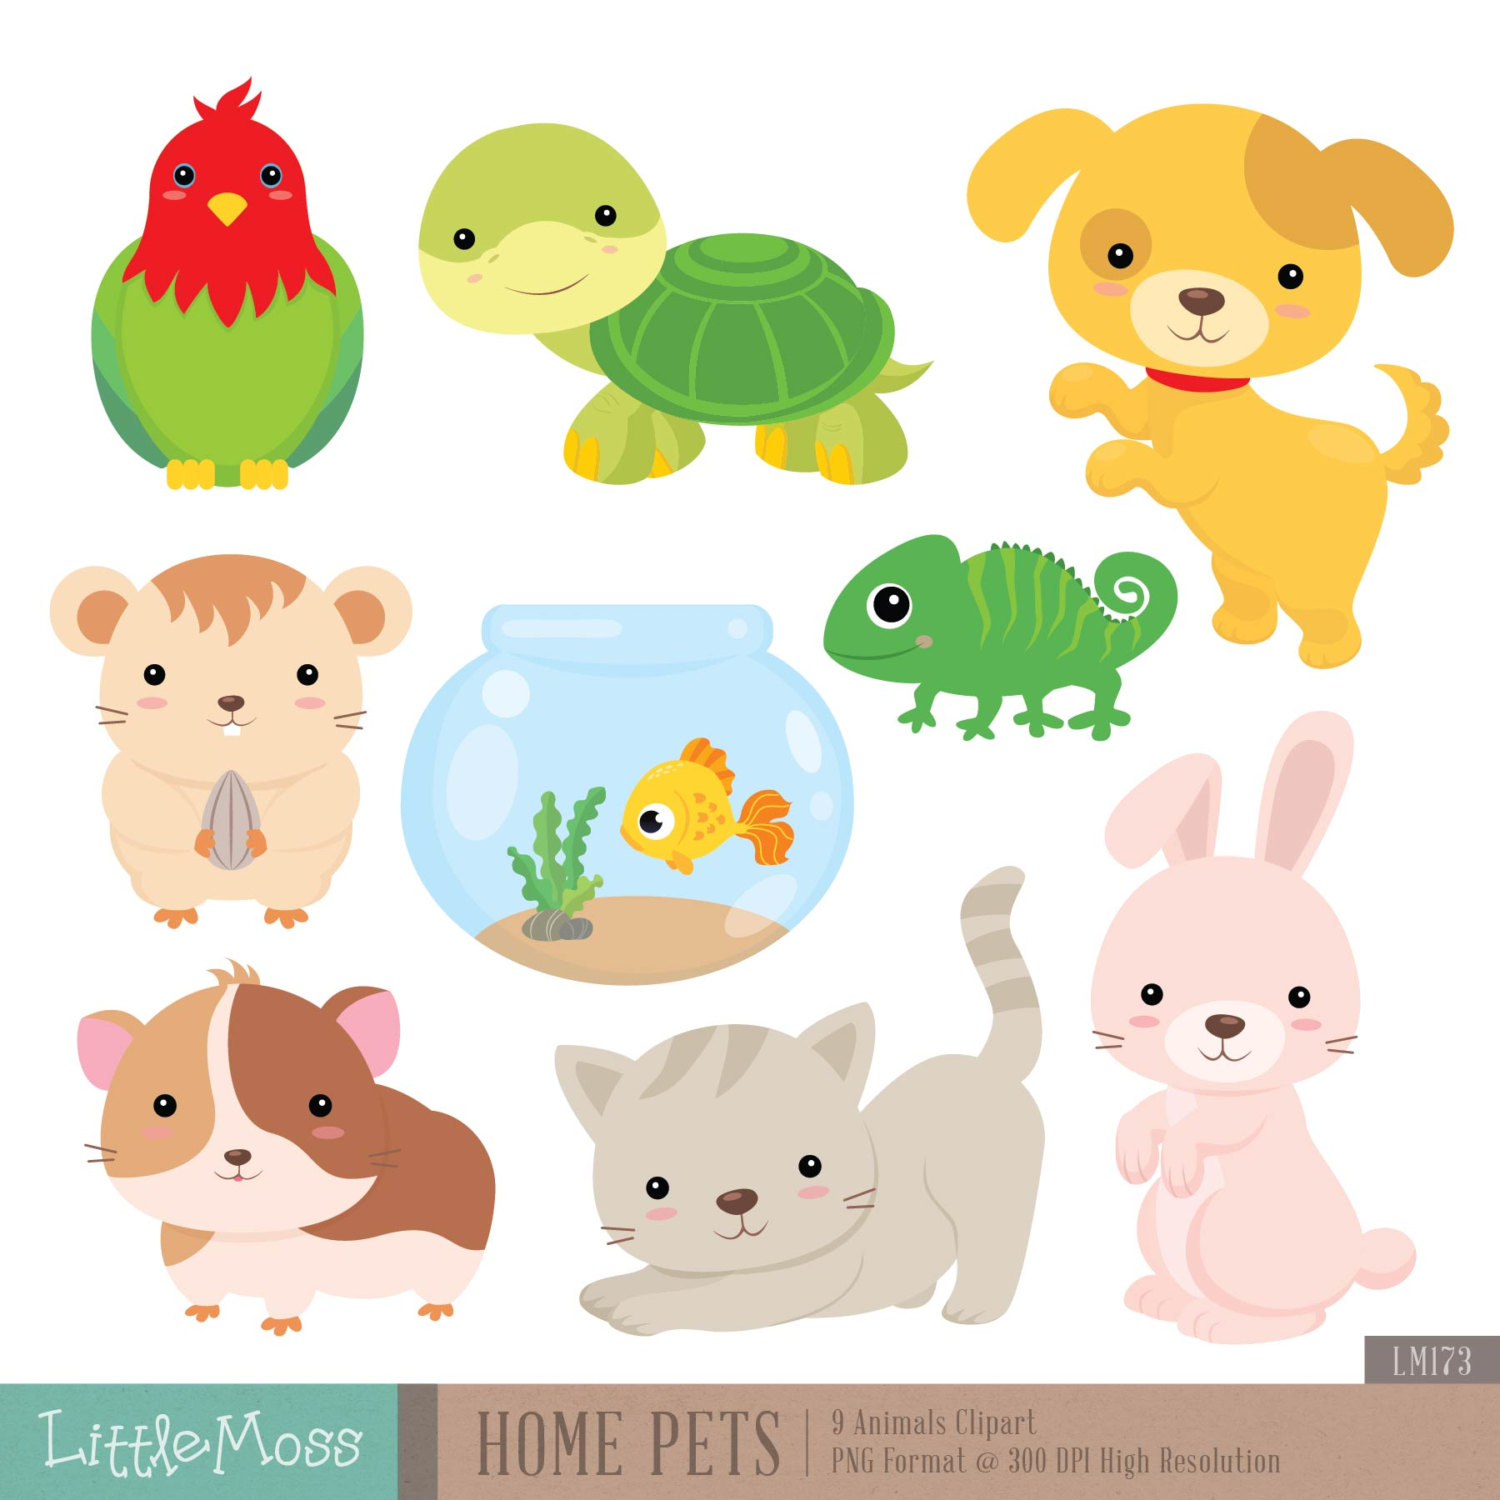 Home pets digital dog. Pet clipart